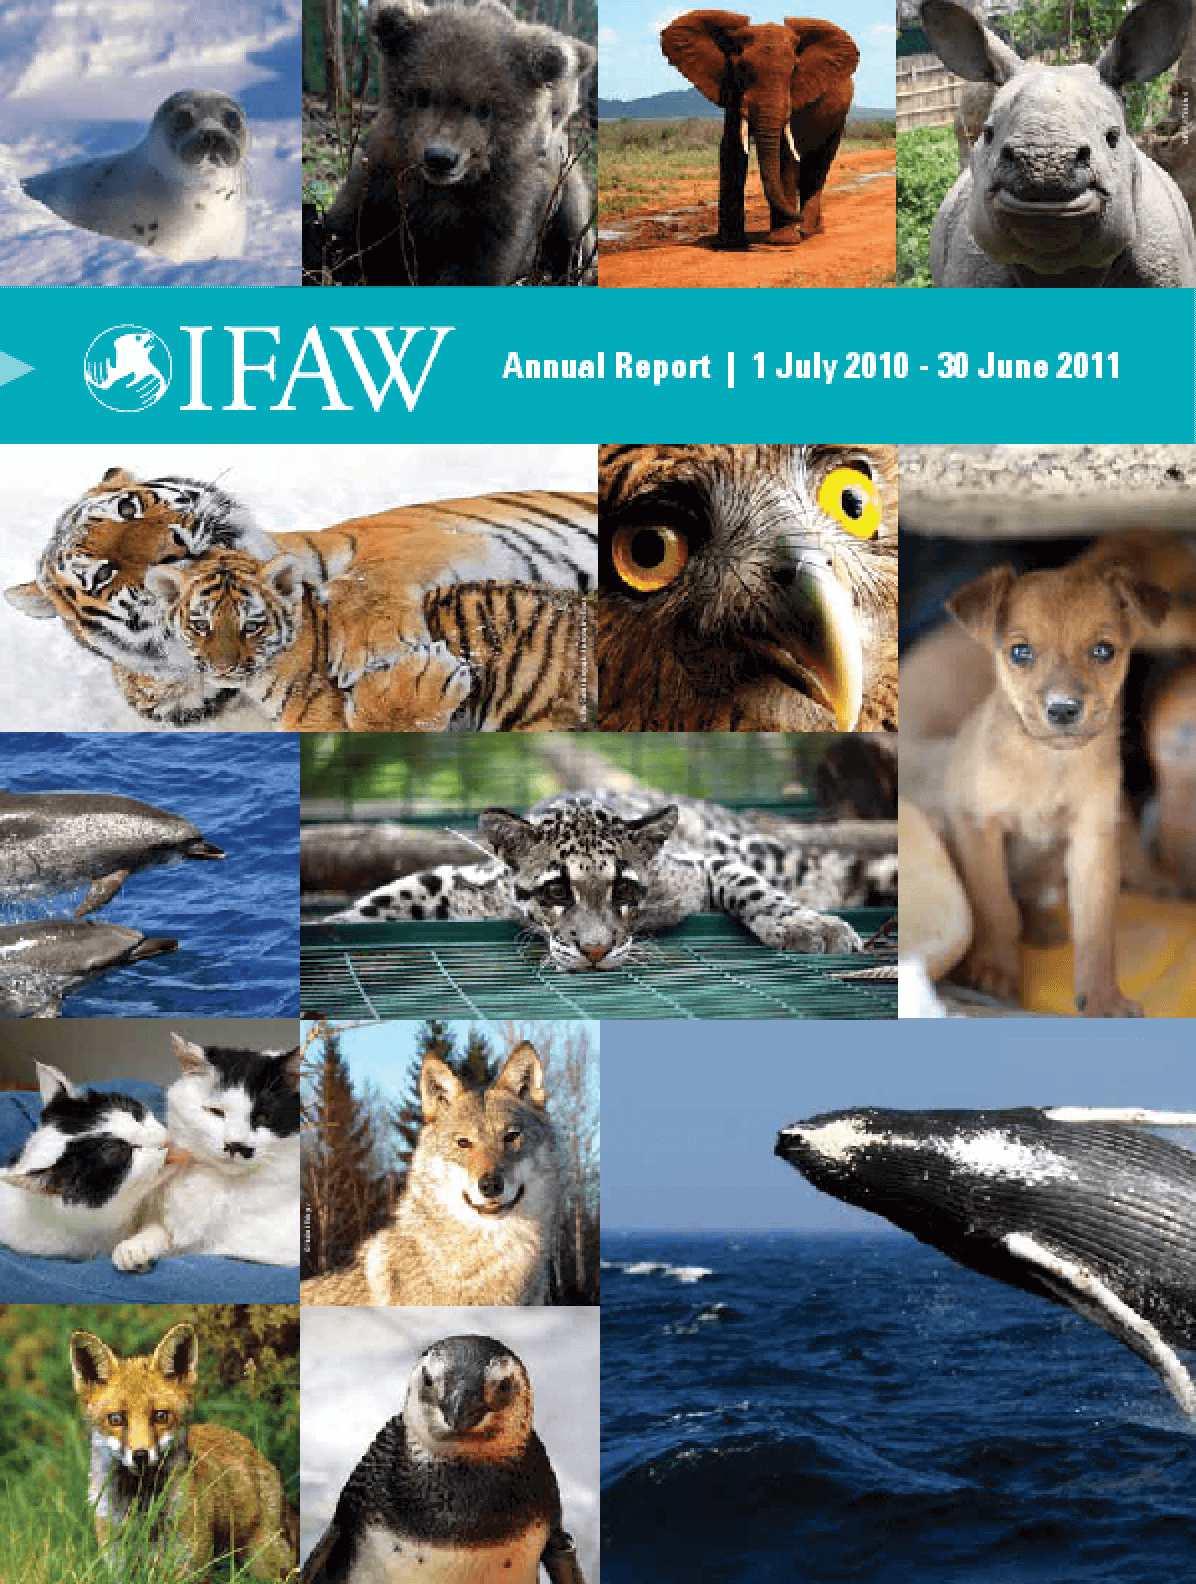 The International Fund for Animal Welfare Annual Report 2011